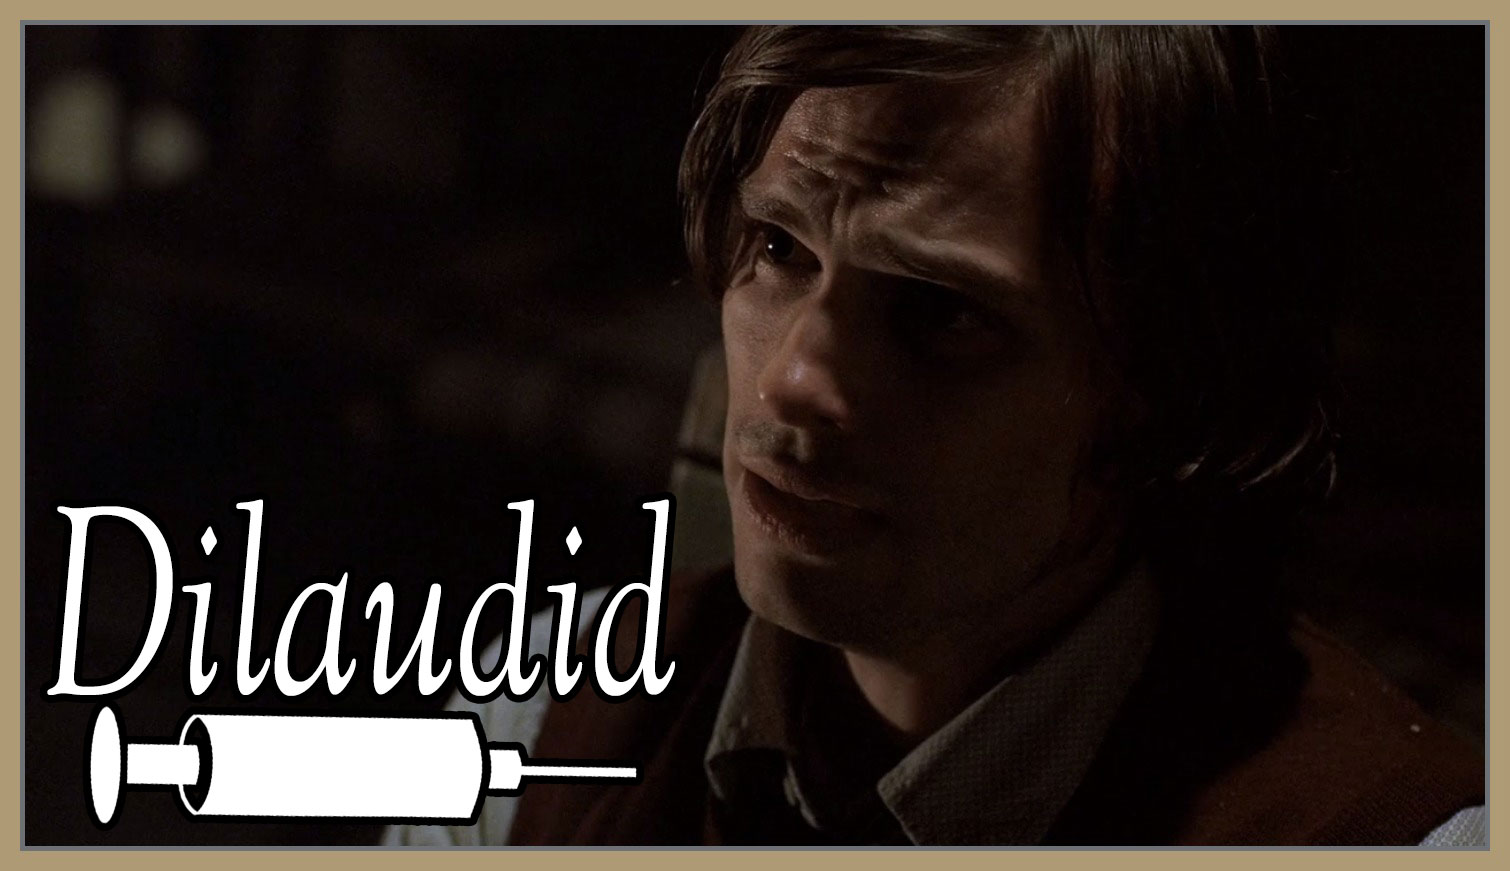 Question: What drug was Reid addicted to?